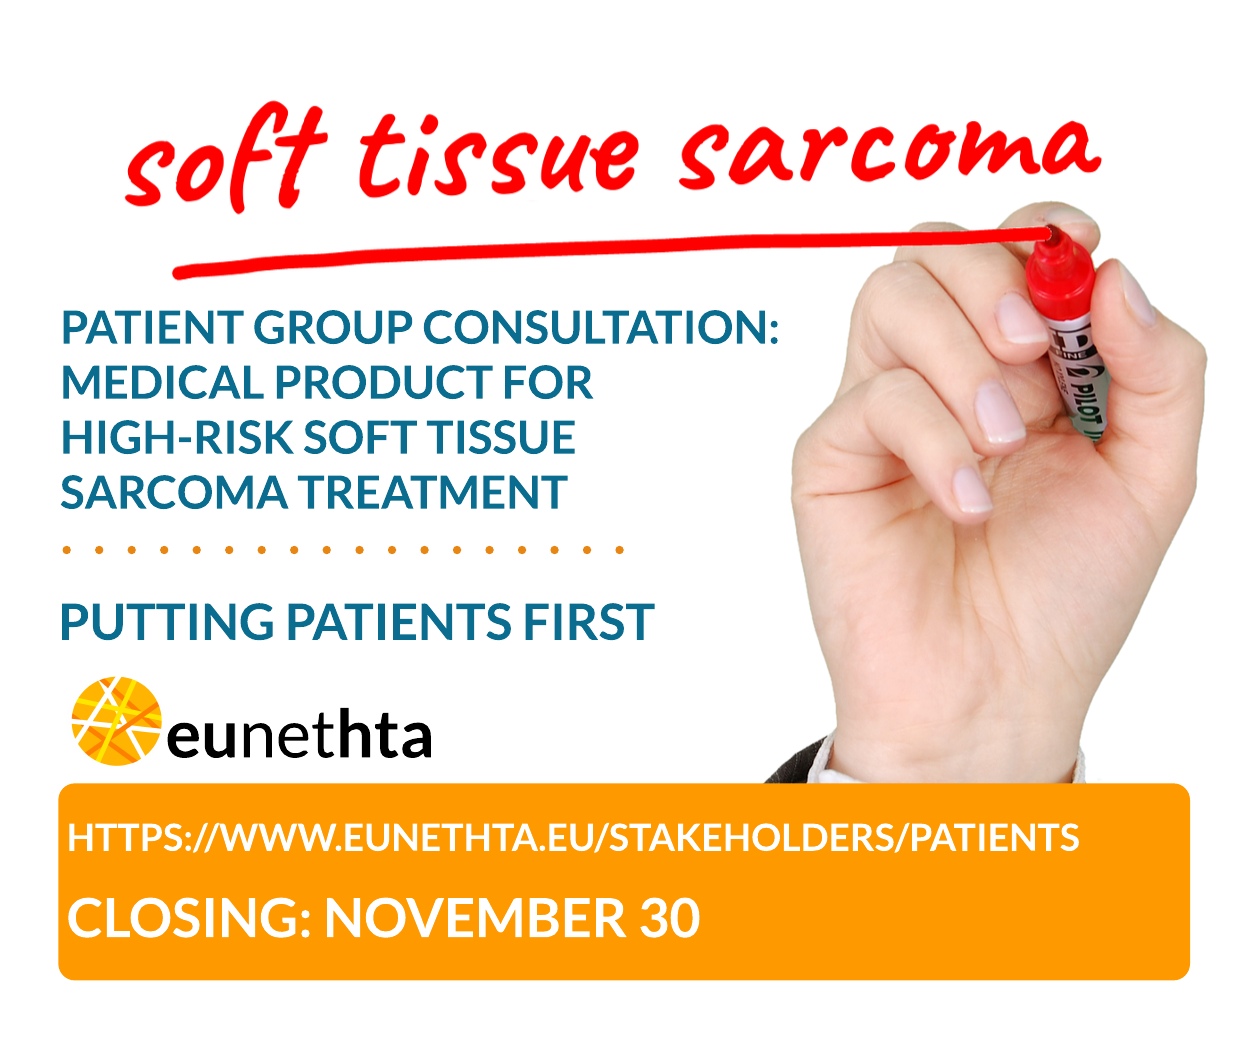 Patient group consultation now open: medical product for high-risk soft tissue sarcoma treatment